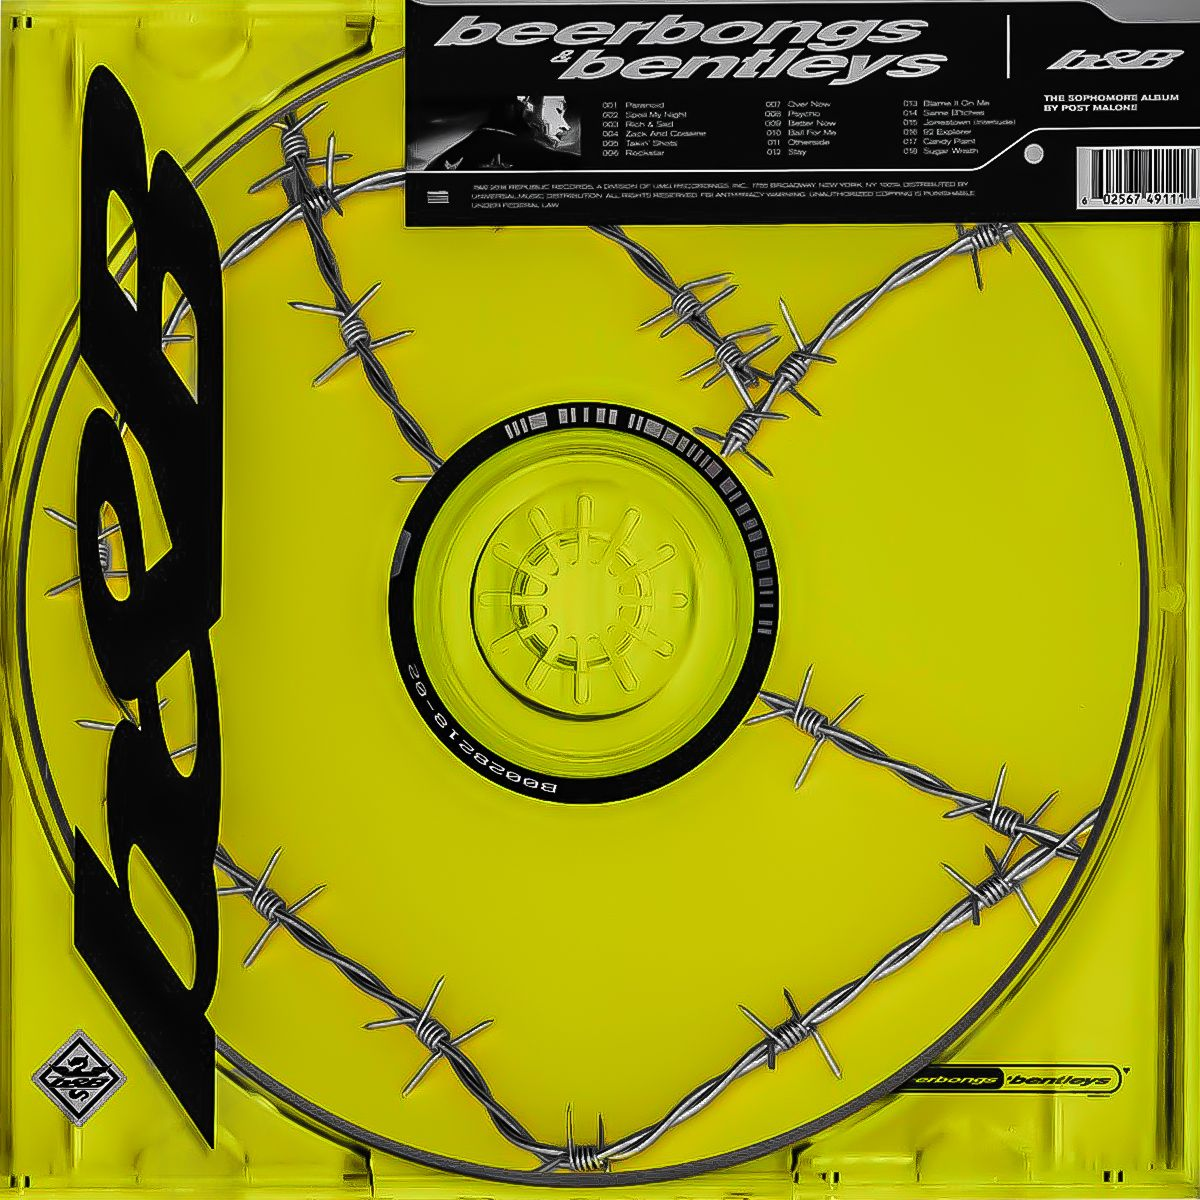 Post Malone Album Cover: Image Result For Beerbongs And Bentleys Album Cover